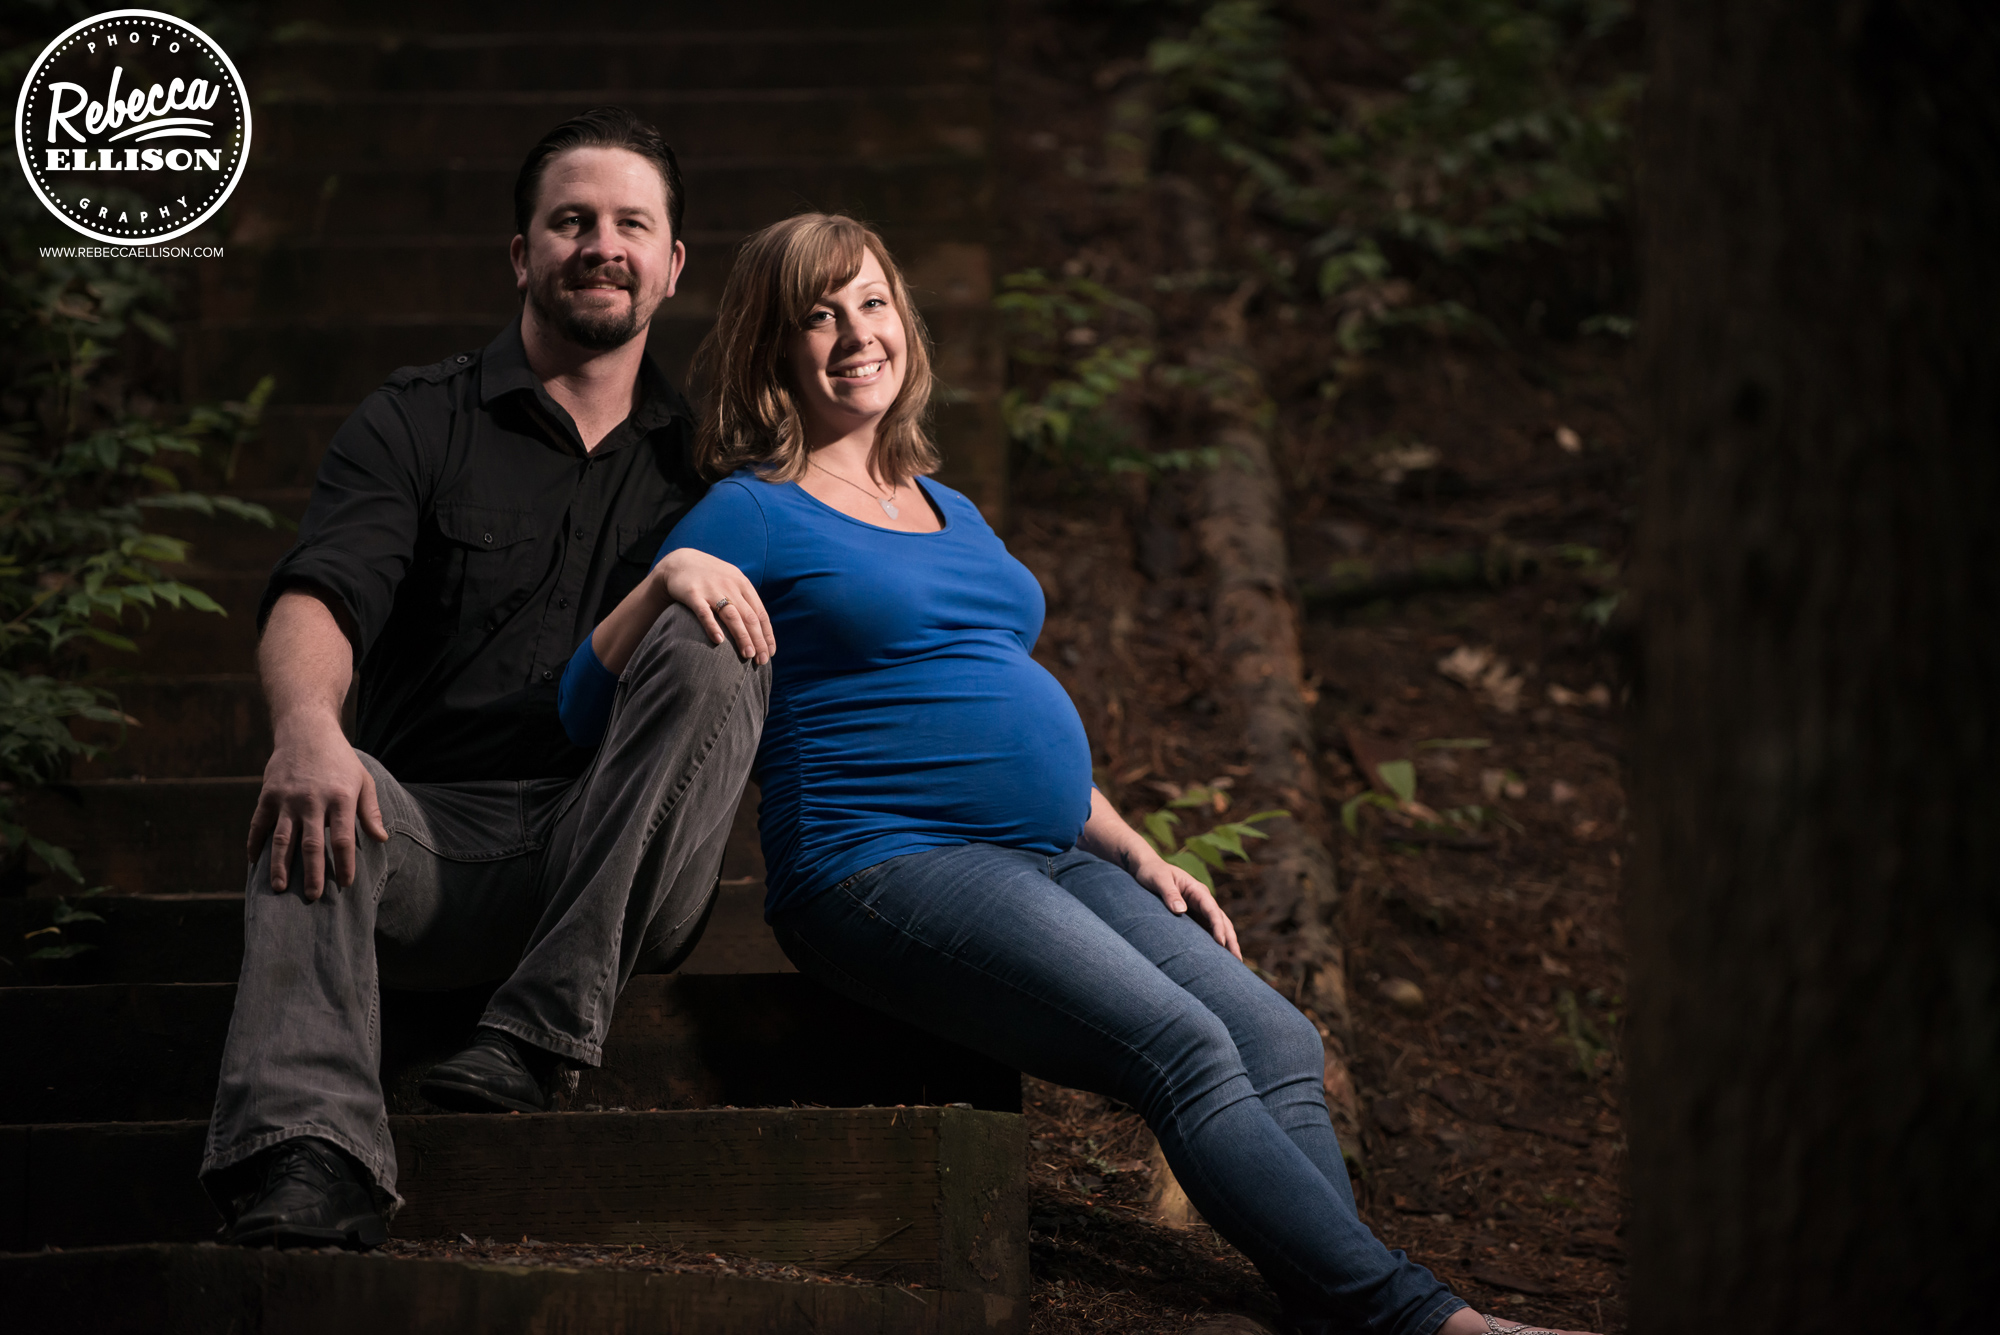 Family pregnancy photography in a forest setting photographed by Shoreline maternity photographer Rebecca Ellison